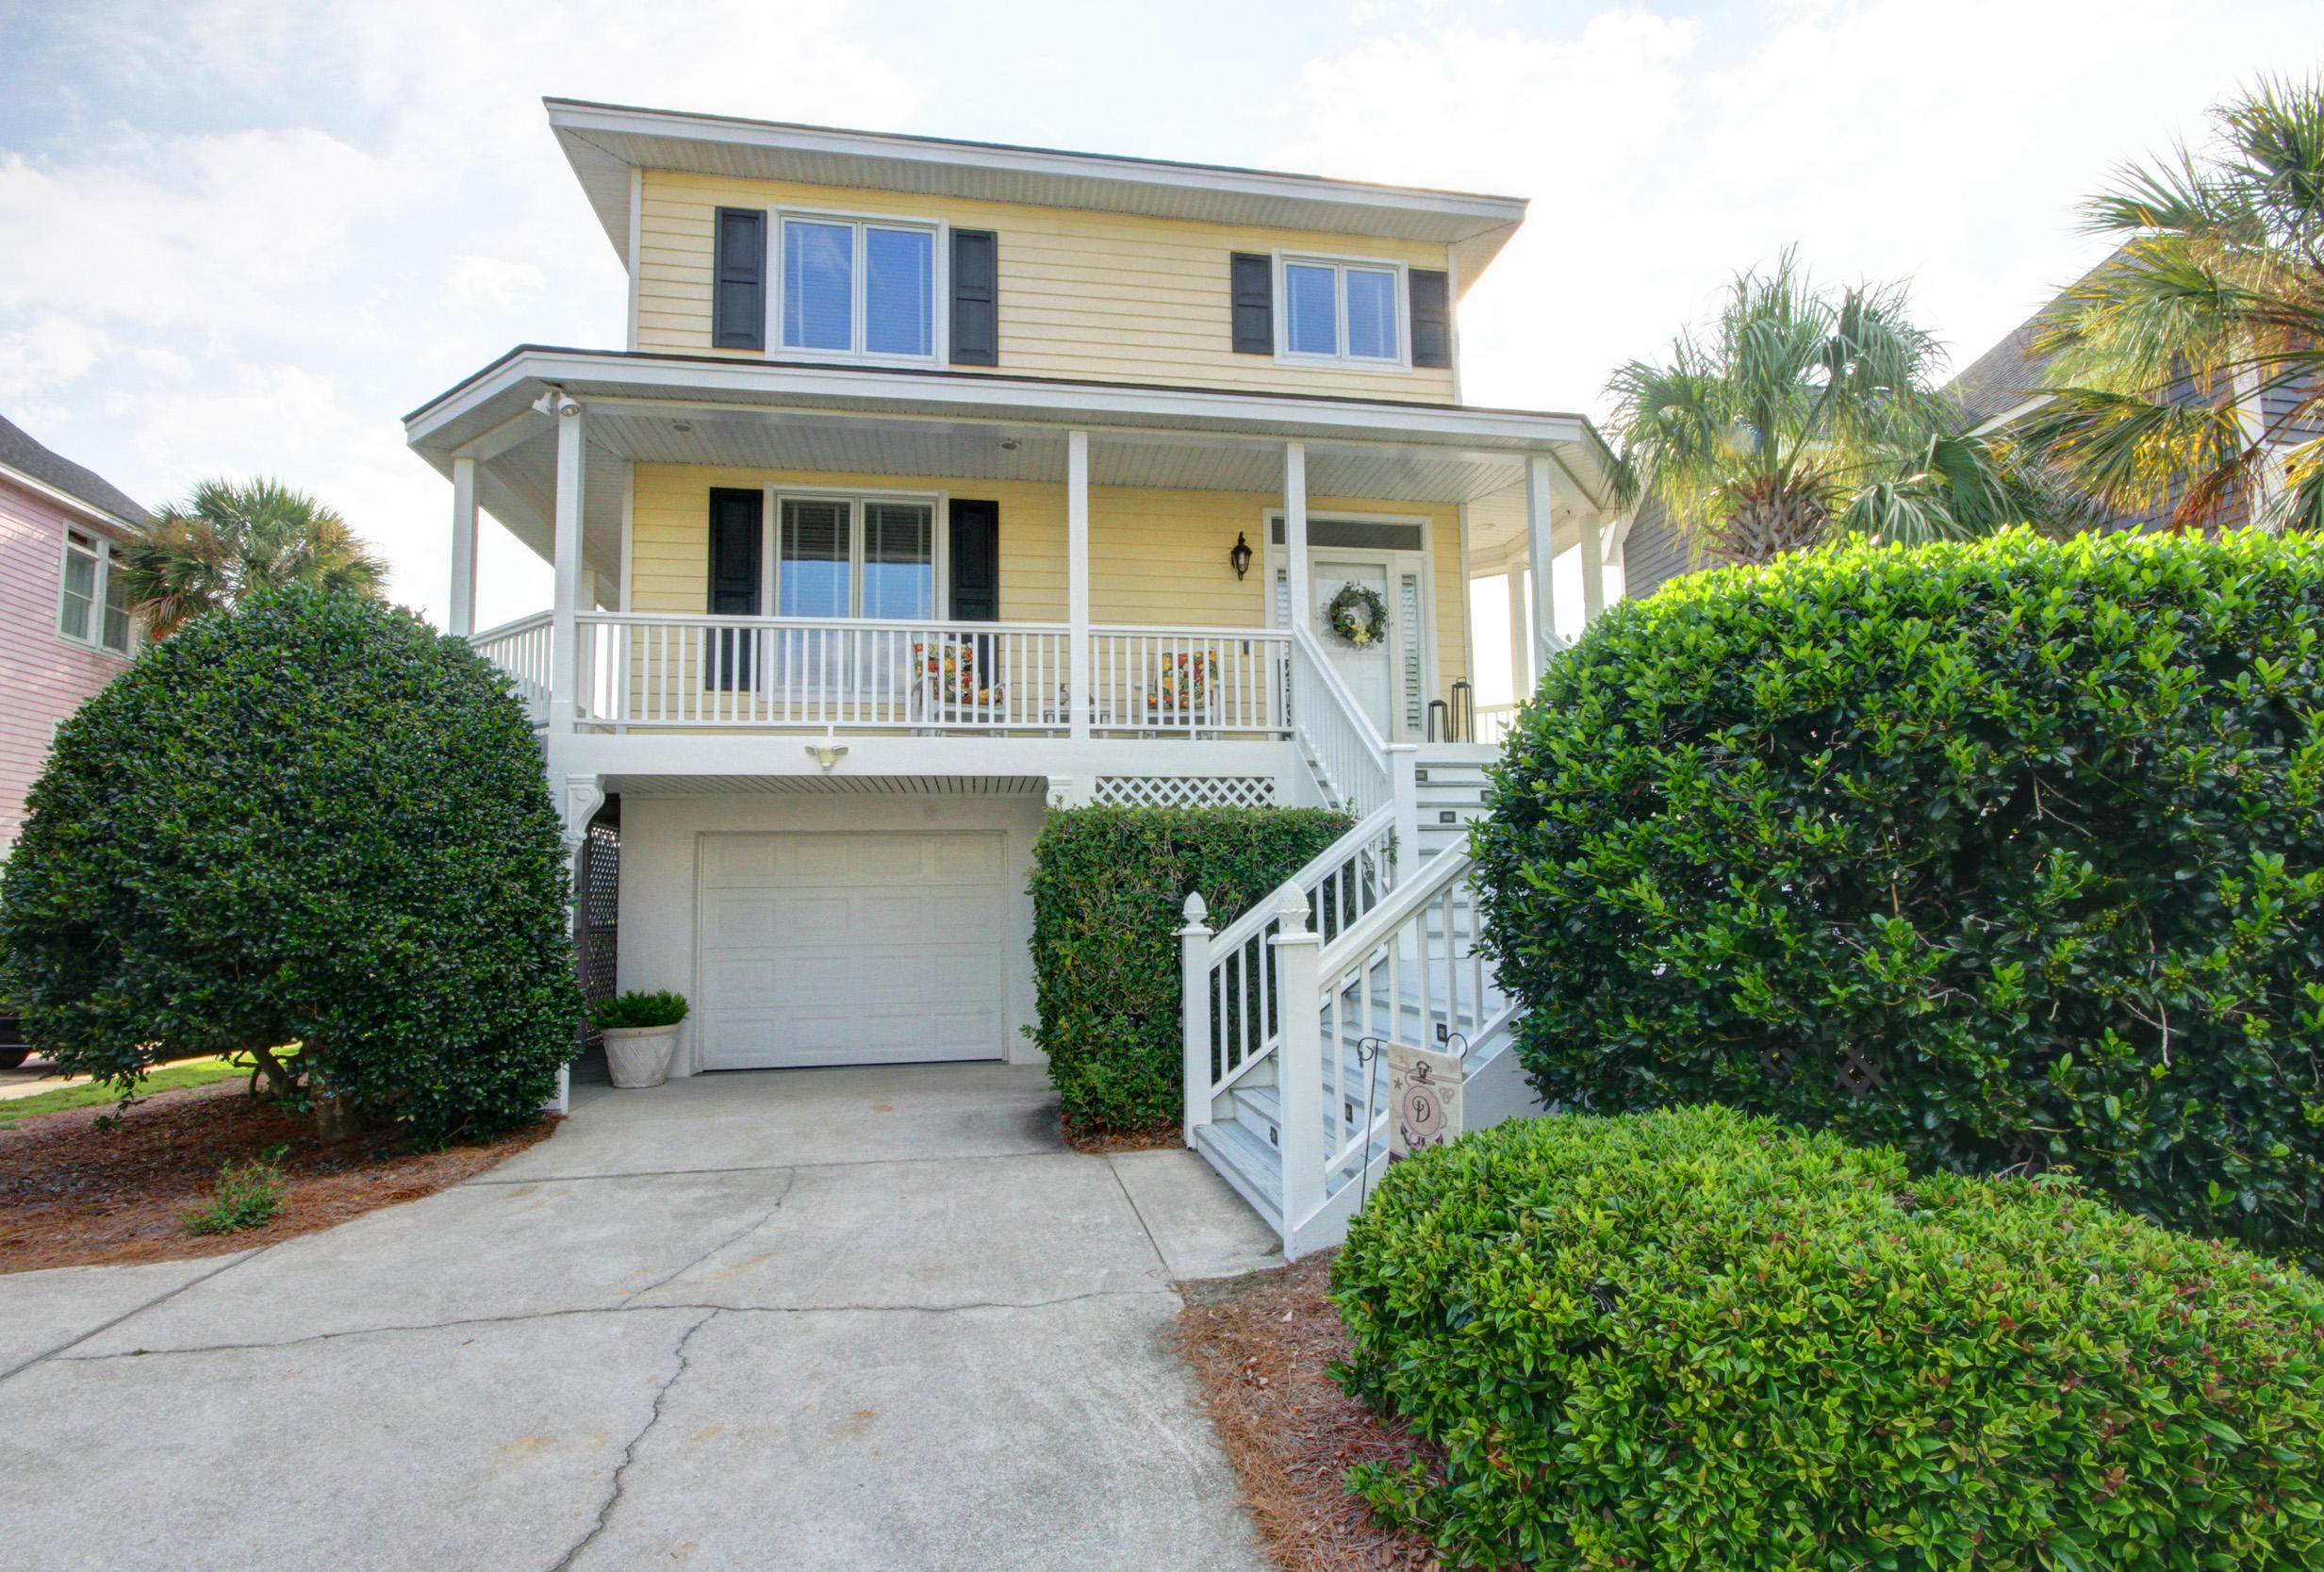 Wild Dunes Homes For Sale - 2 Morgan Pl, Isle of Palms, SC - 52